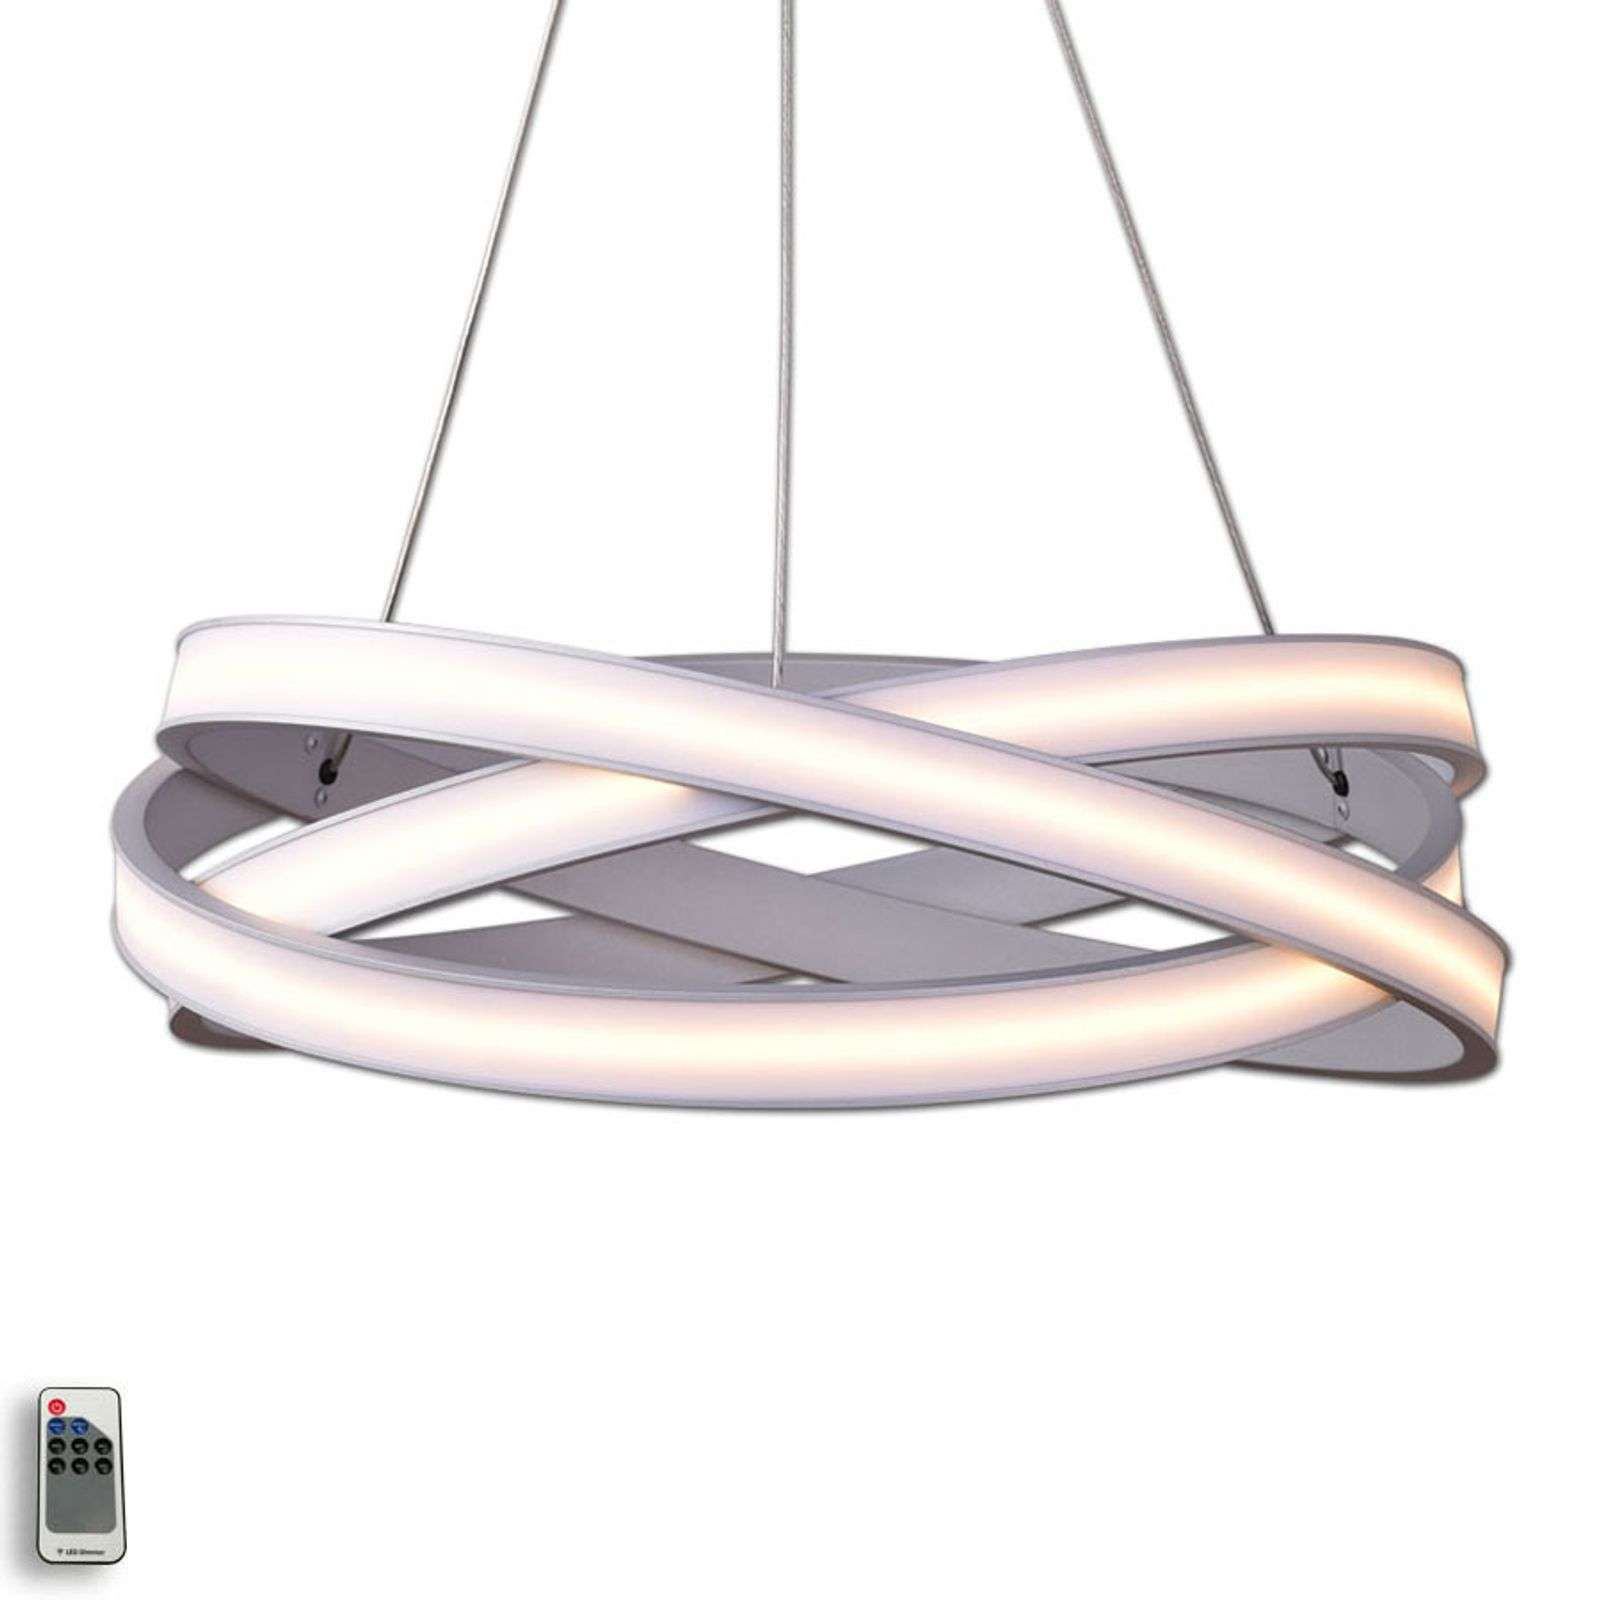 Tivano - decoratieve LED hanglamp in alu